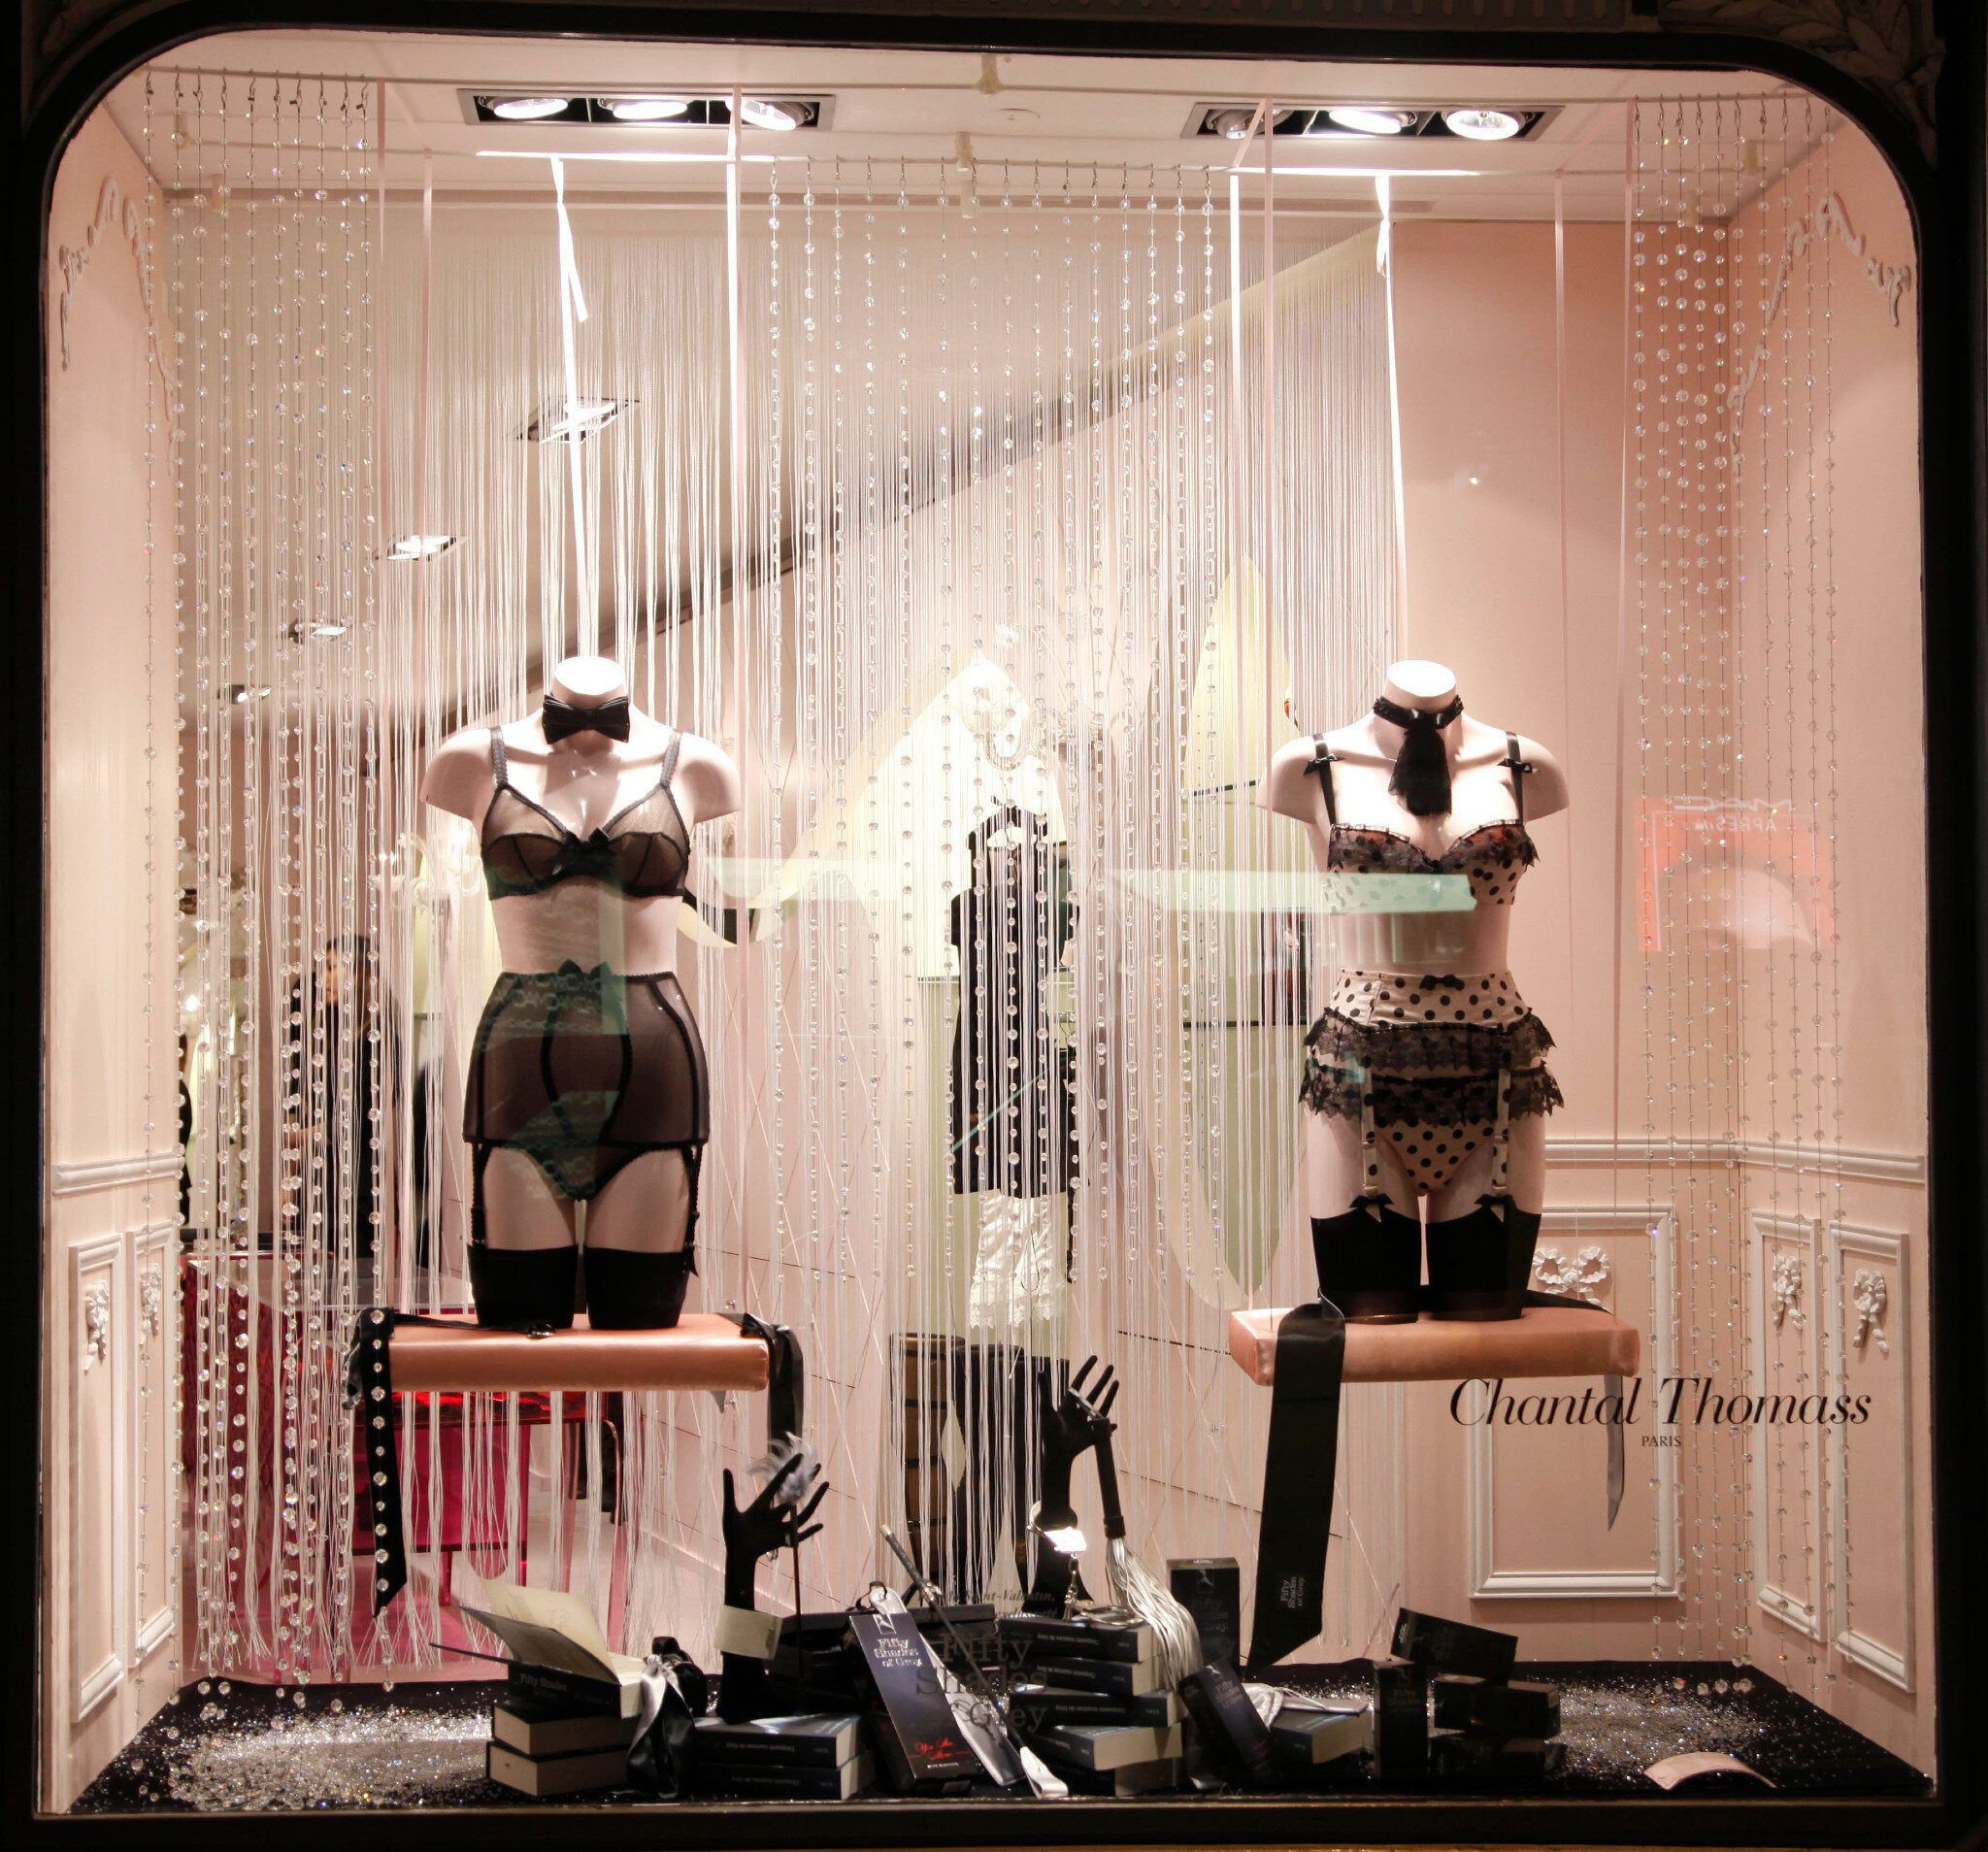 fifty shades toys on twitter the window of chantal thomass paris a very ana lingerie. Black Bedroom Furniture Sets. Home Design Ideas